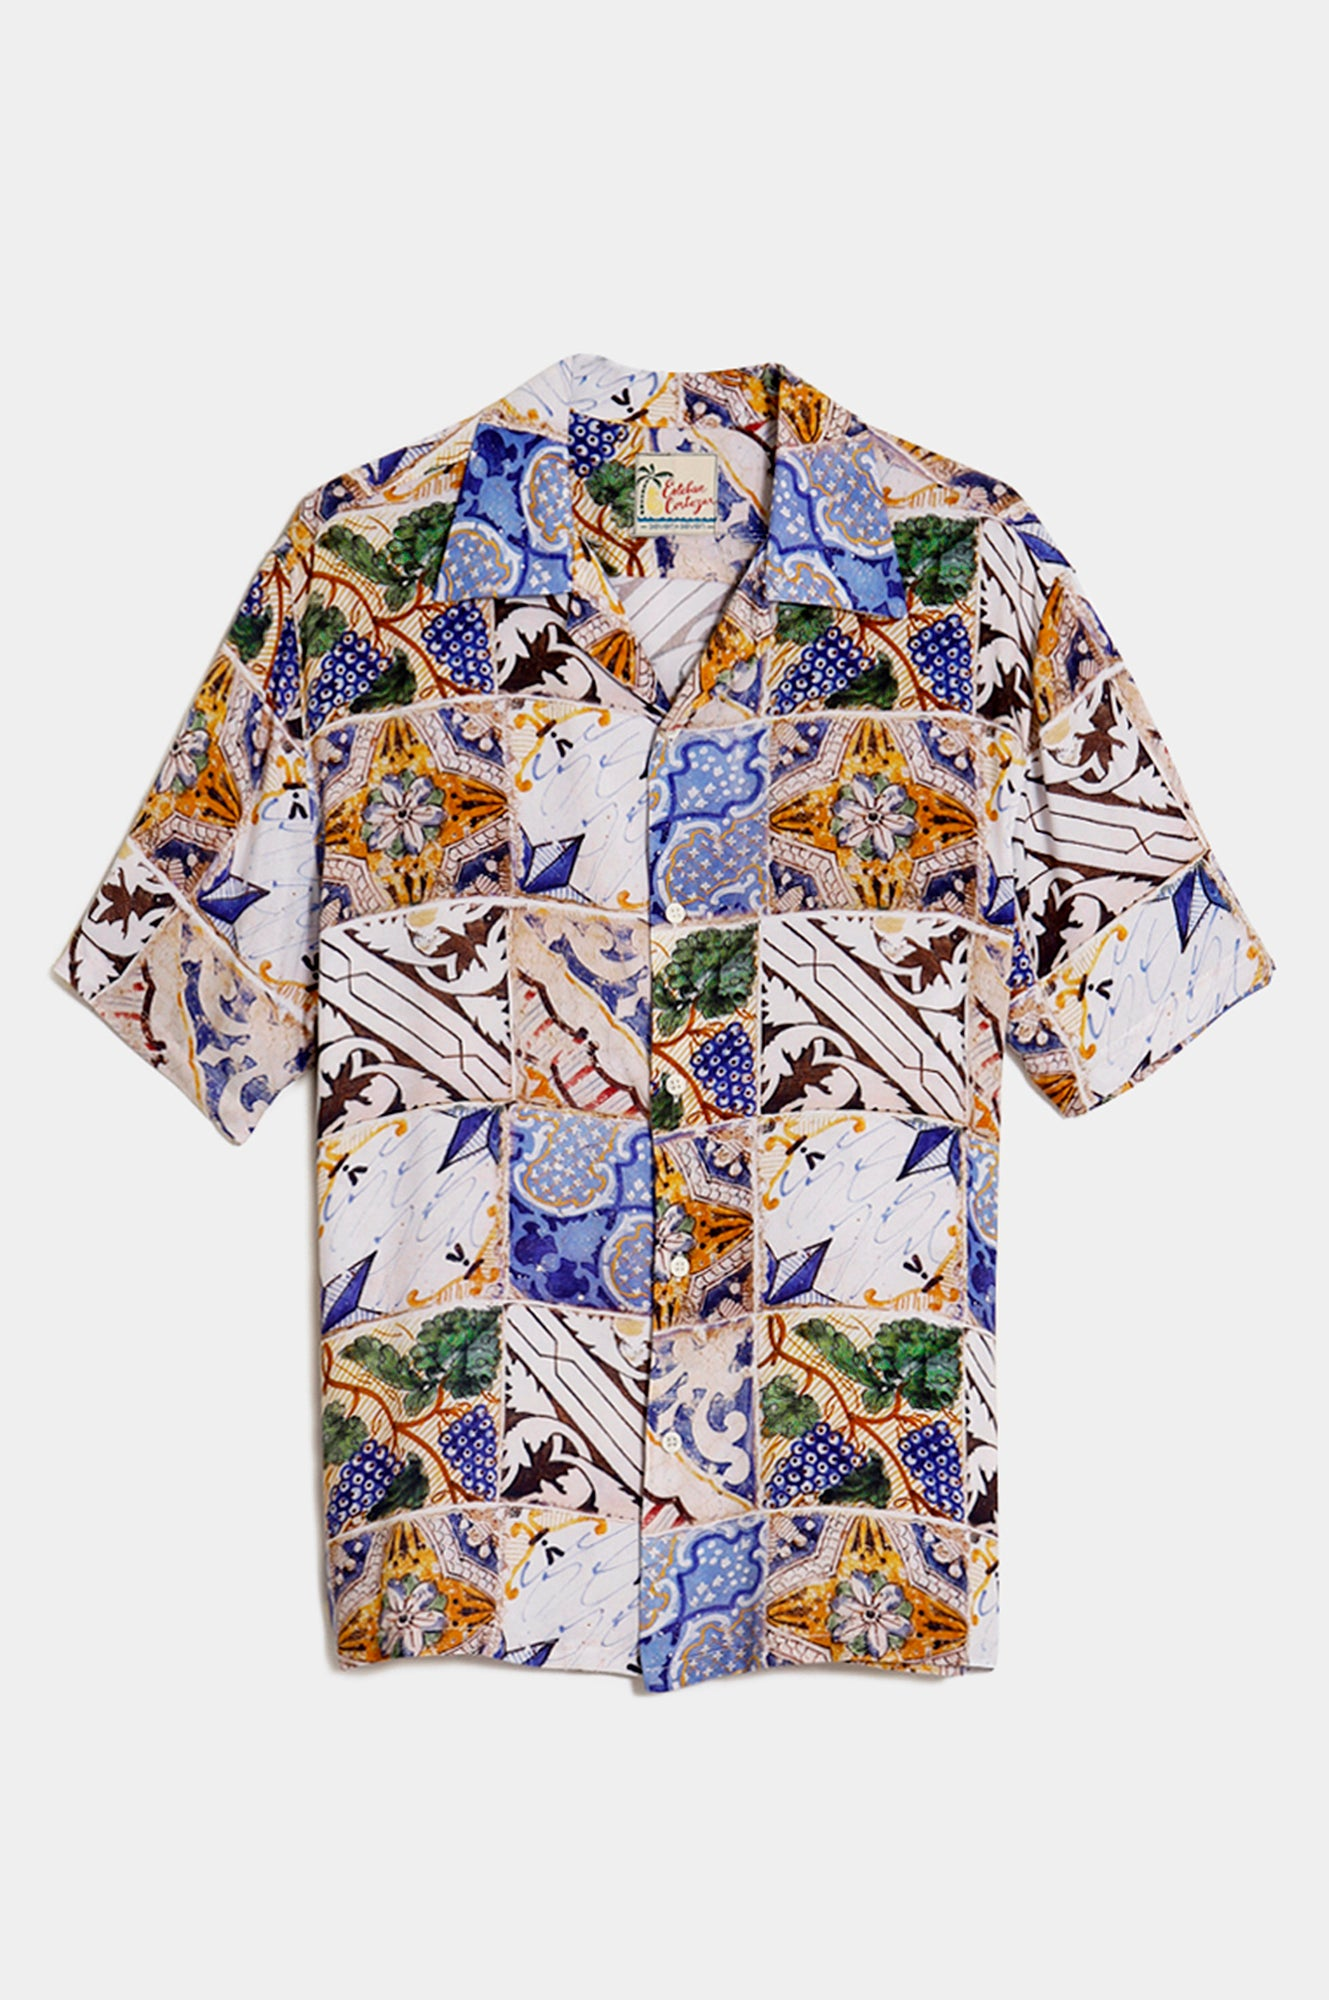 TILE PRINT SHORT SLEEVE SHIRT - Esteban Cortazar